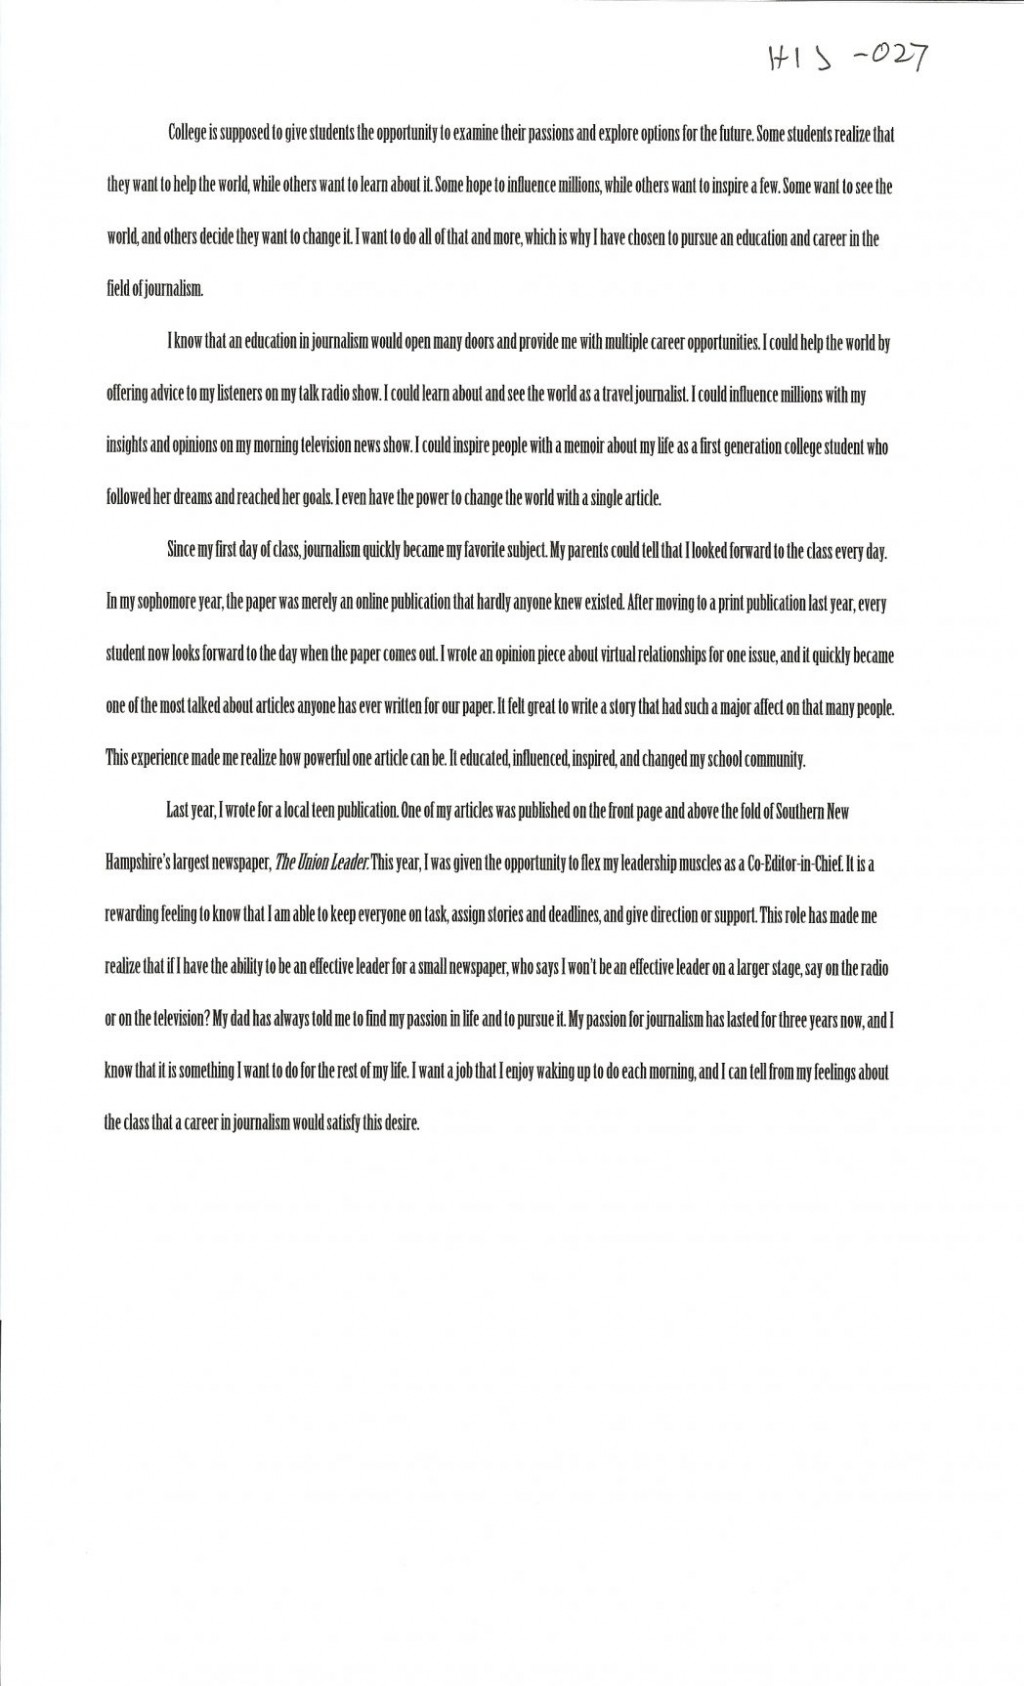 005 Free Argumentative Essay Example The Value Of College Education For Scholarship Tuition Alexa Serrecchia Stunning Topics Examples Middle School On Obesity Large